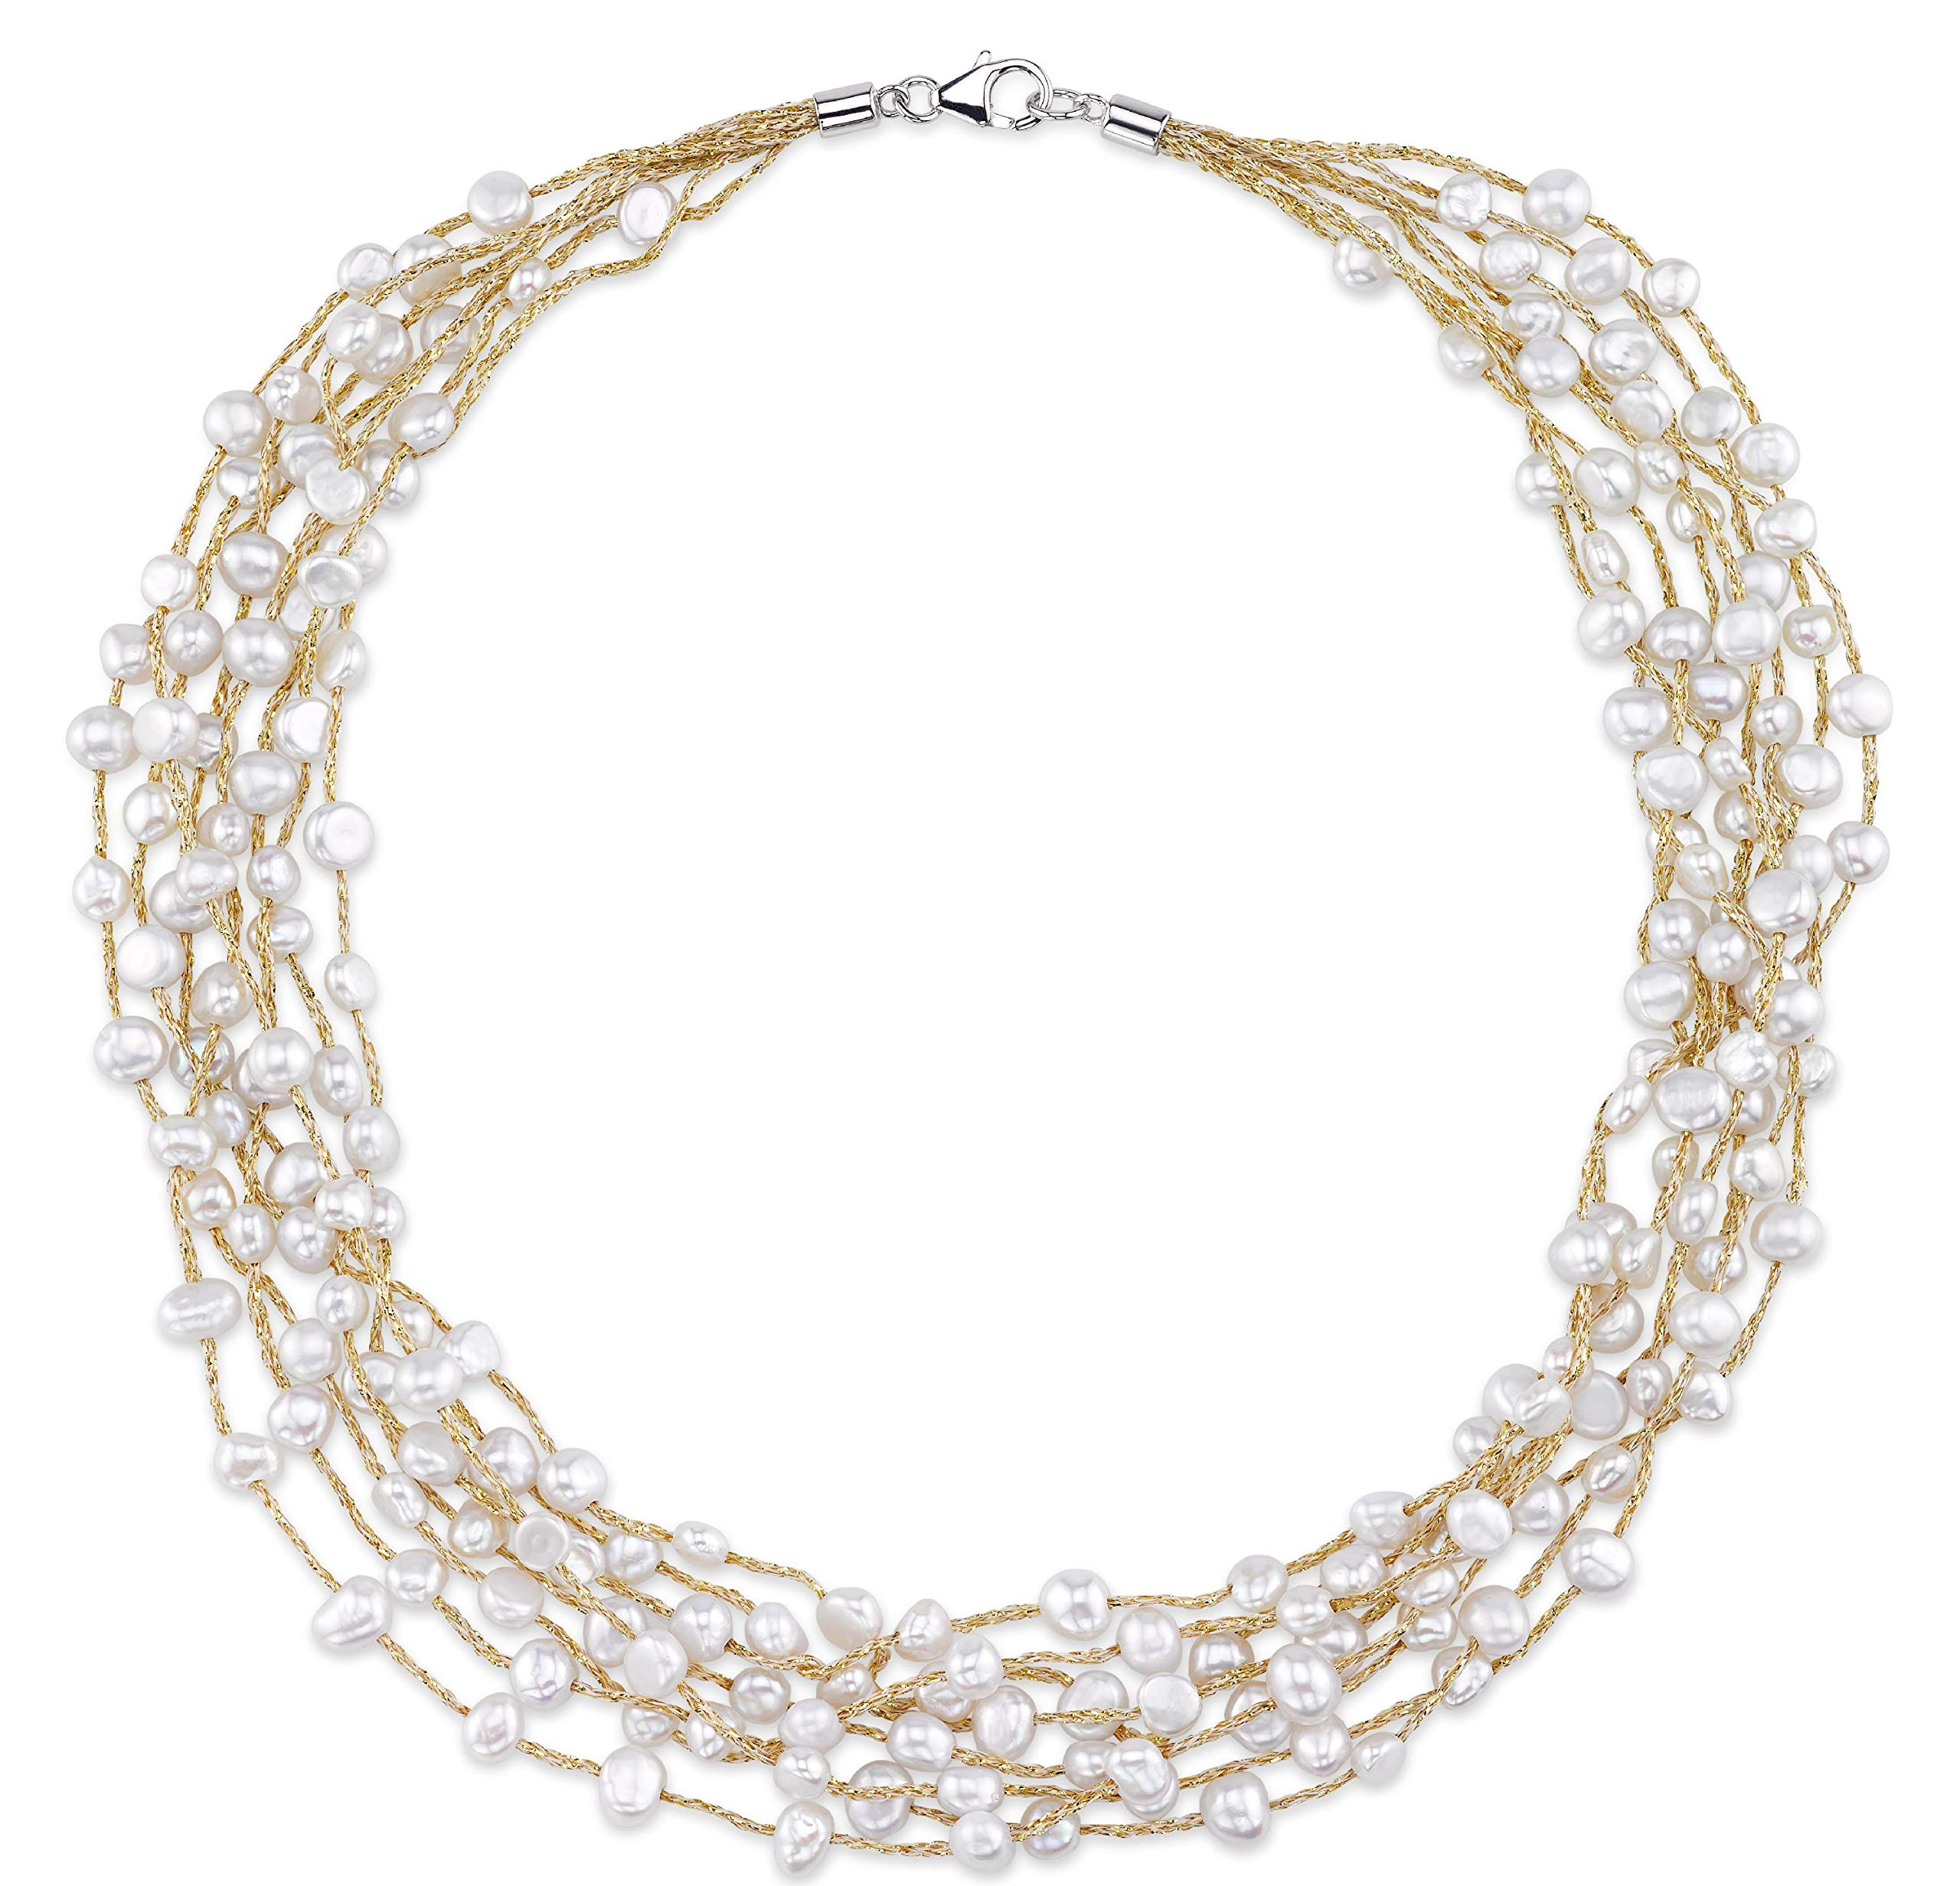 THE PEARL SOURCE 4-5mm Genuine White Freshwater Cultured Pearl Mila Necklace for Women